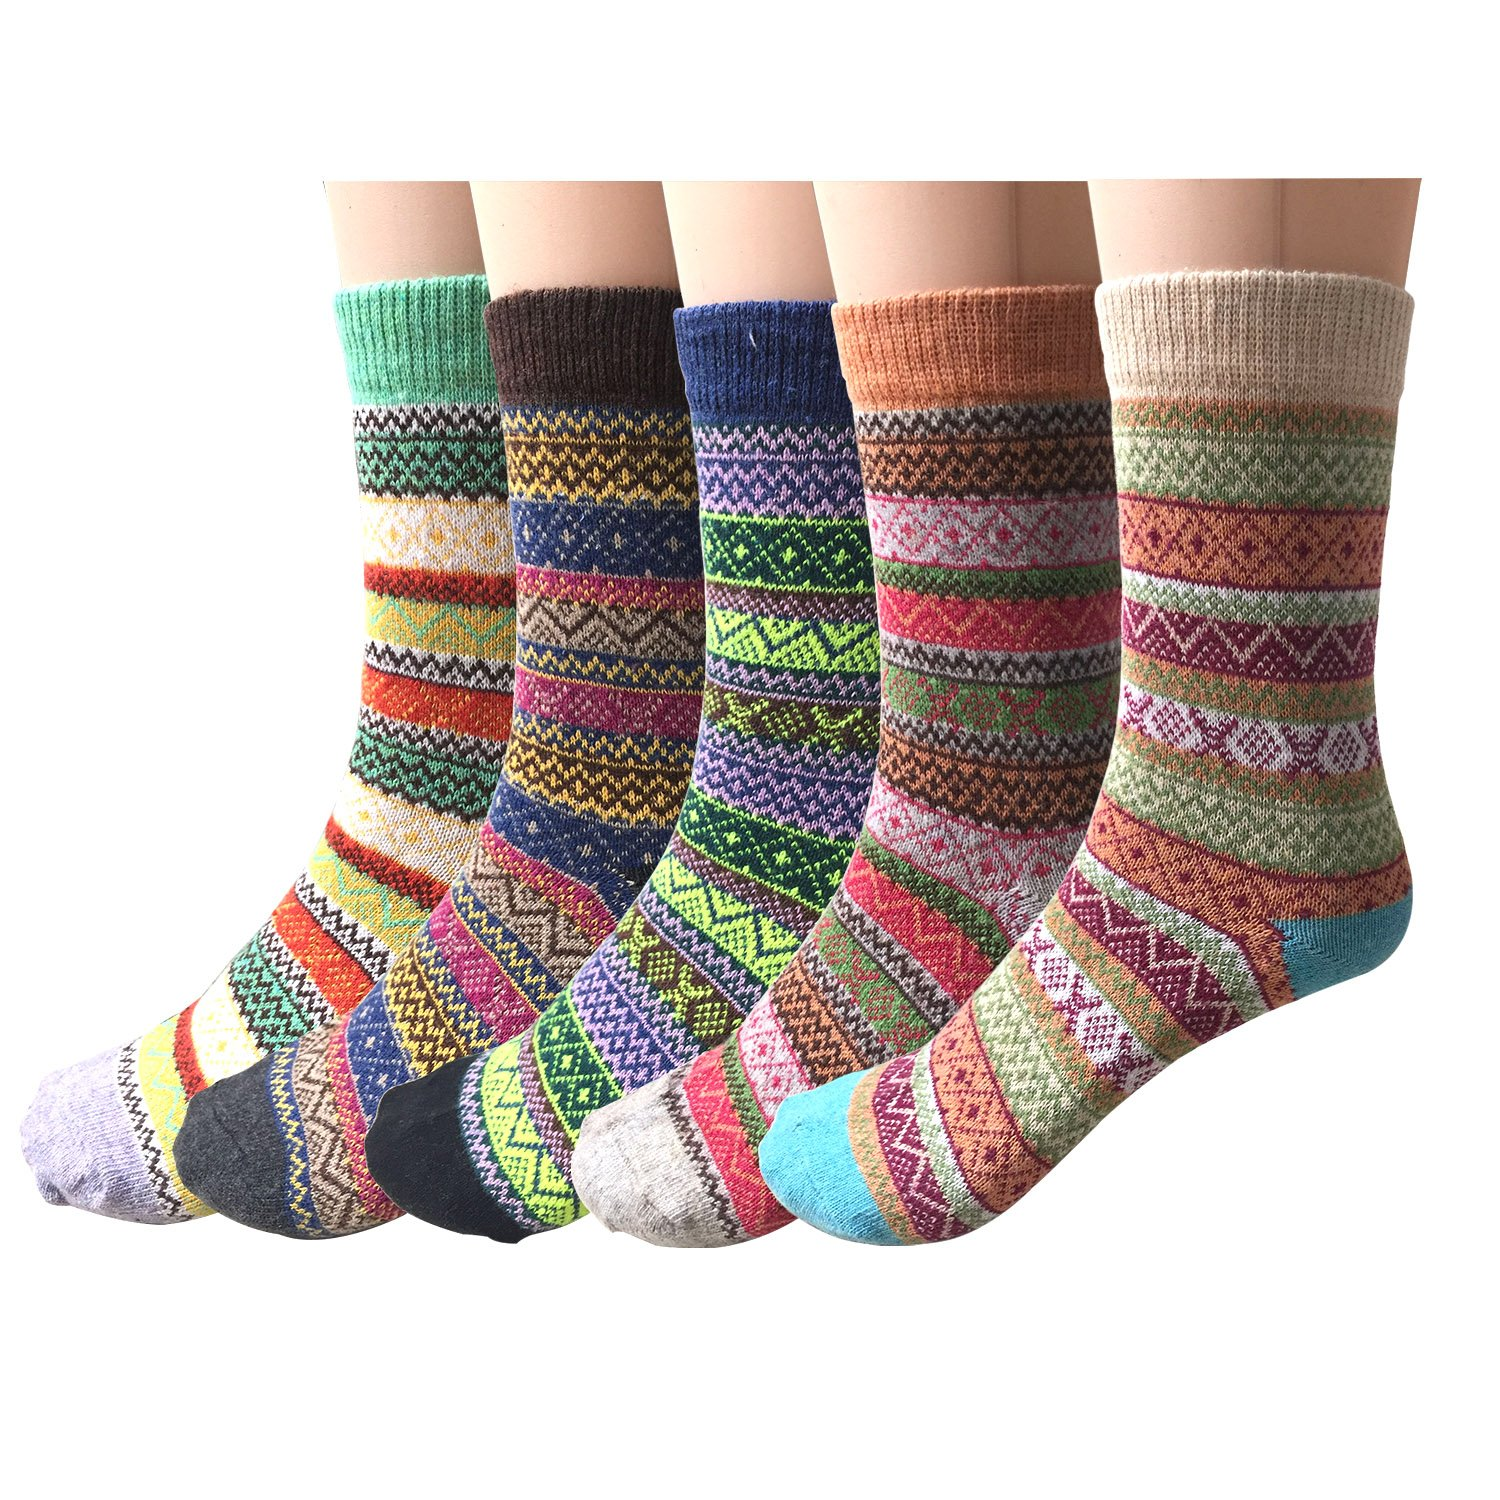 Pack of 5 Womens Vintage Style Cotton Knitting Wool Warm Winter Fall Crew Socks, Mixed Color 1, One Size - fit shoe sizes from 5-10 by Justay